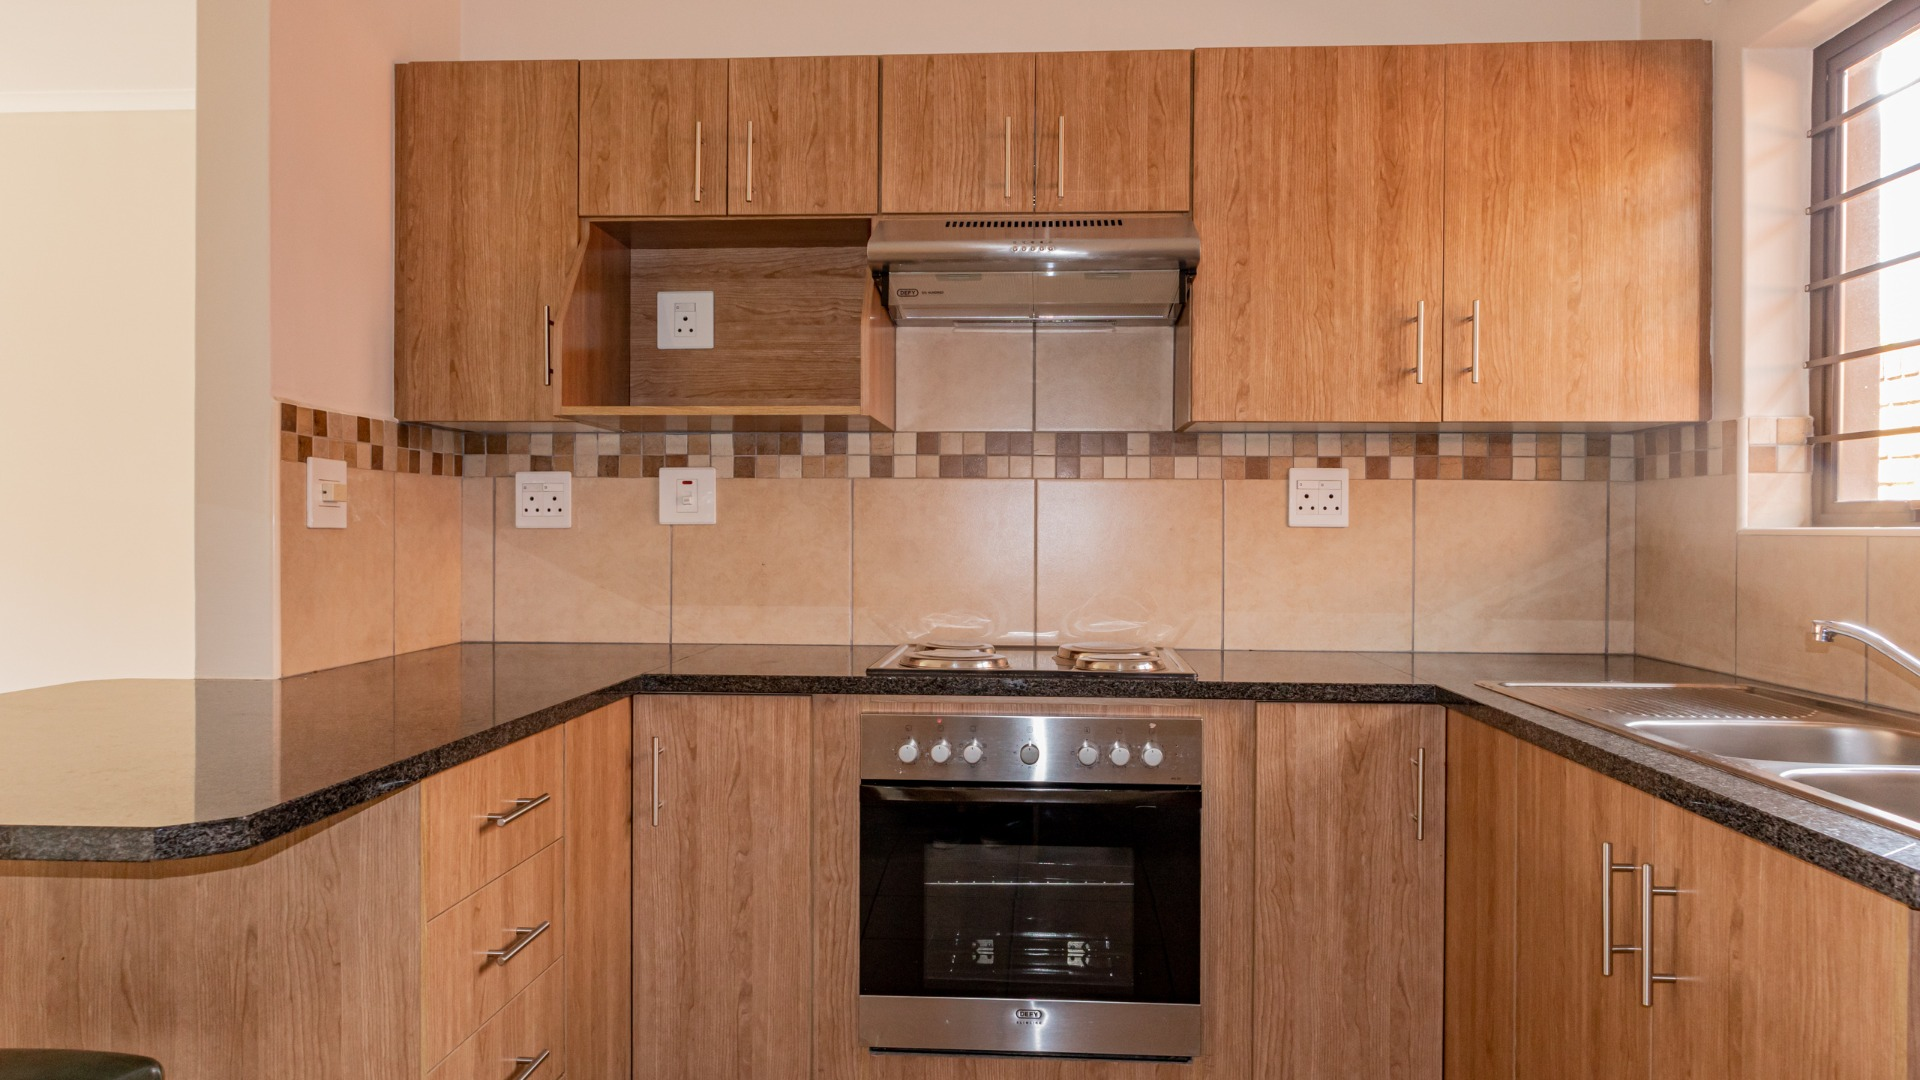 2 Bedroom Townhouse For Sale in Olivedale